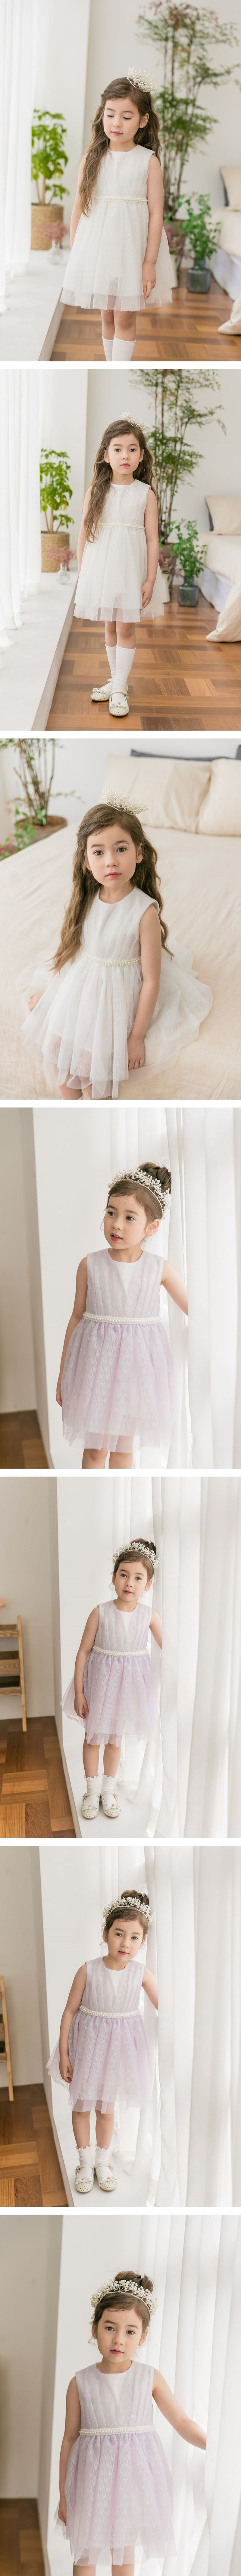 COCO RIBBON - Korean Children Fashion - #Kfashion4kids - Audrey One-piece